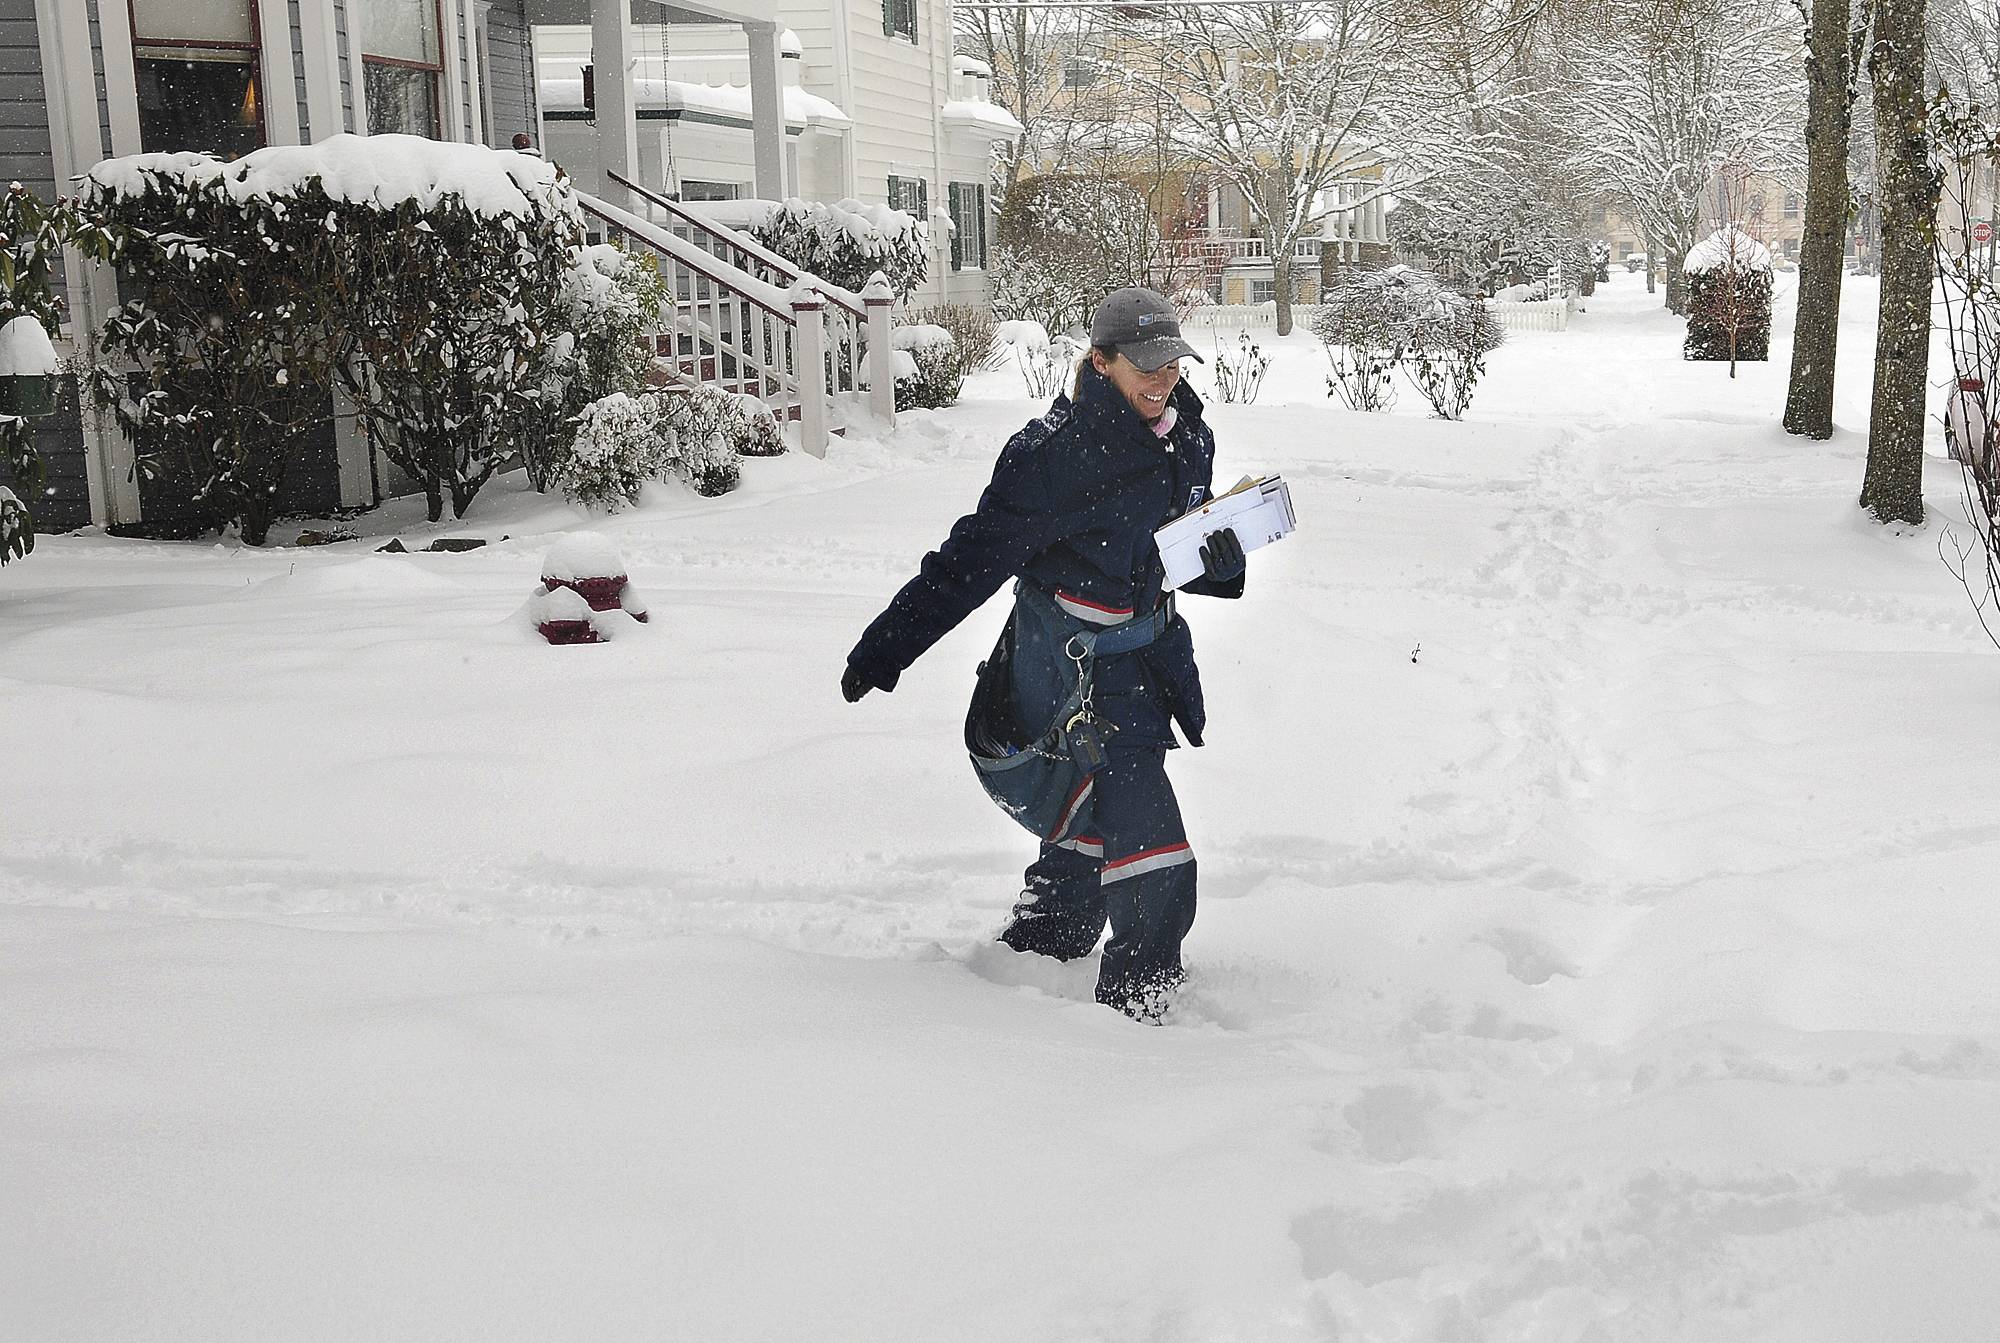 Mail carrier Tammie Harris trudges through the snow while delivering to homes in the Monteith District of Albany, Ore., Friday, Feb. 7, 2014. More than a foot of snow has fallen in the Willamette Valley community during the last two days. The area, known for its rain, rarely sees more than a few inches of the white stuff a year.